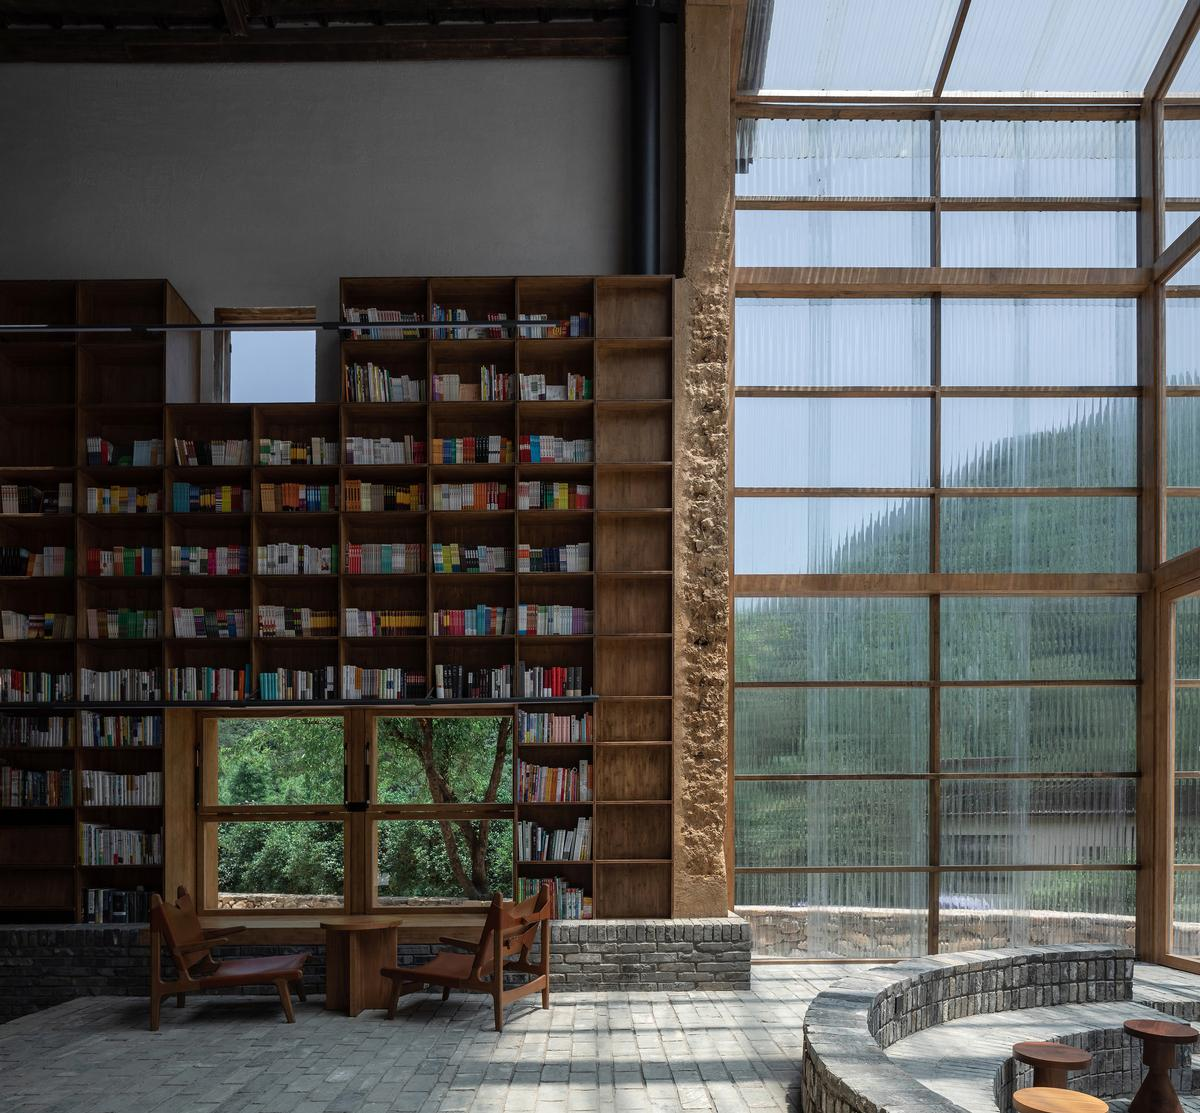 Bamboo bookshelves rise up the building's interior walls / Su Shengliang